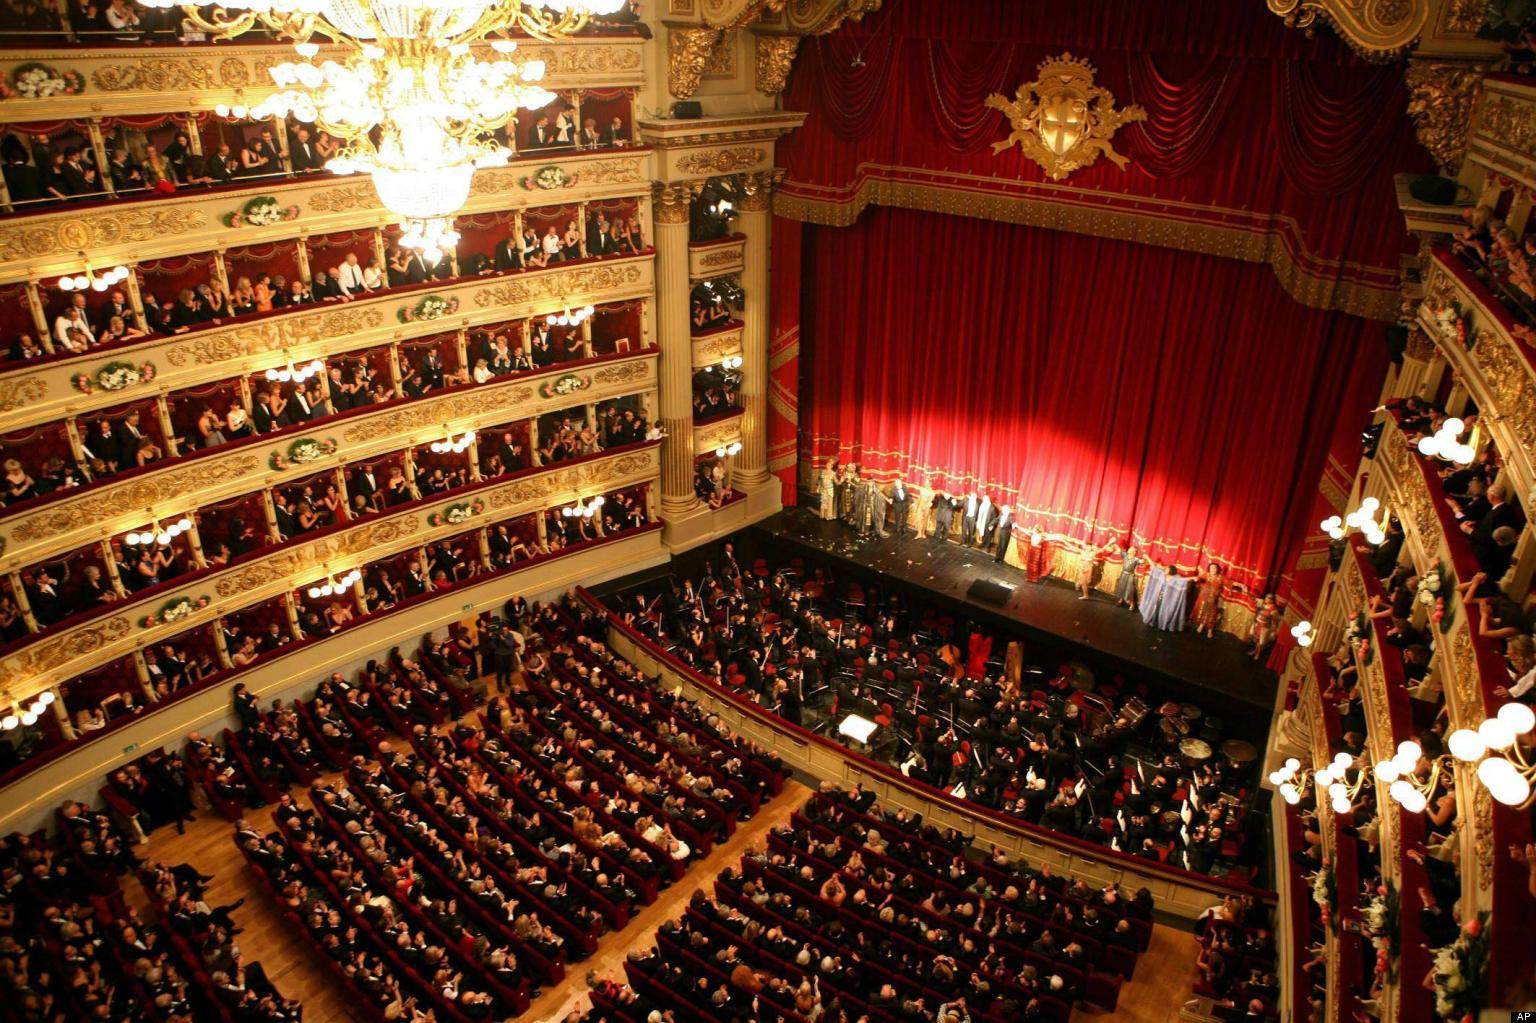 MUSIC AND THEATRE